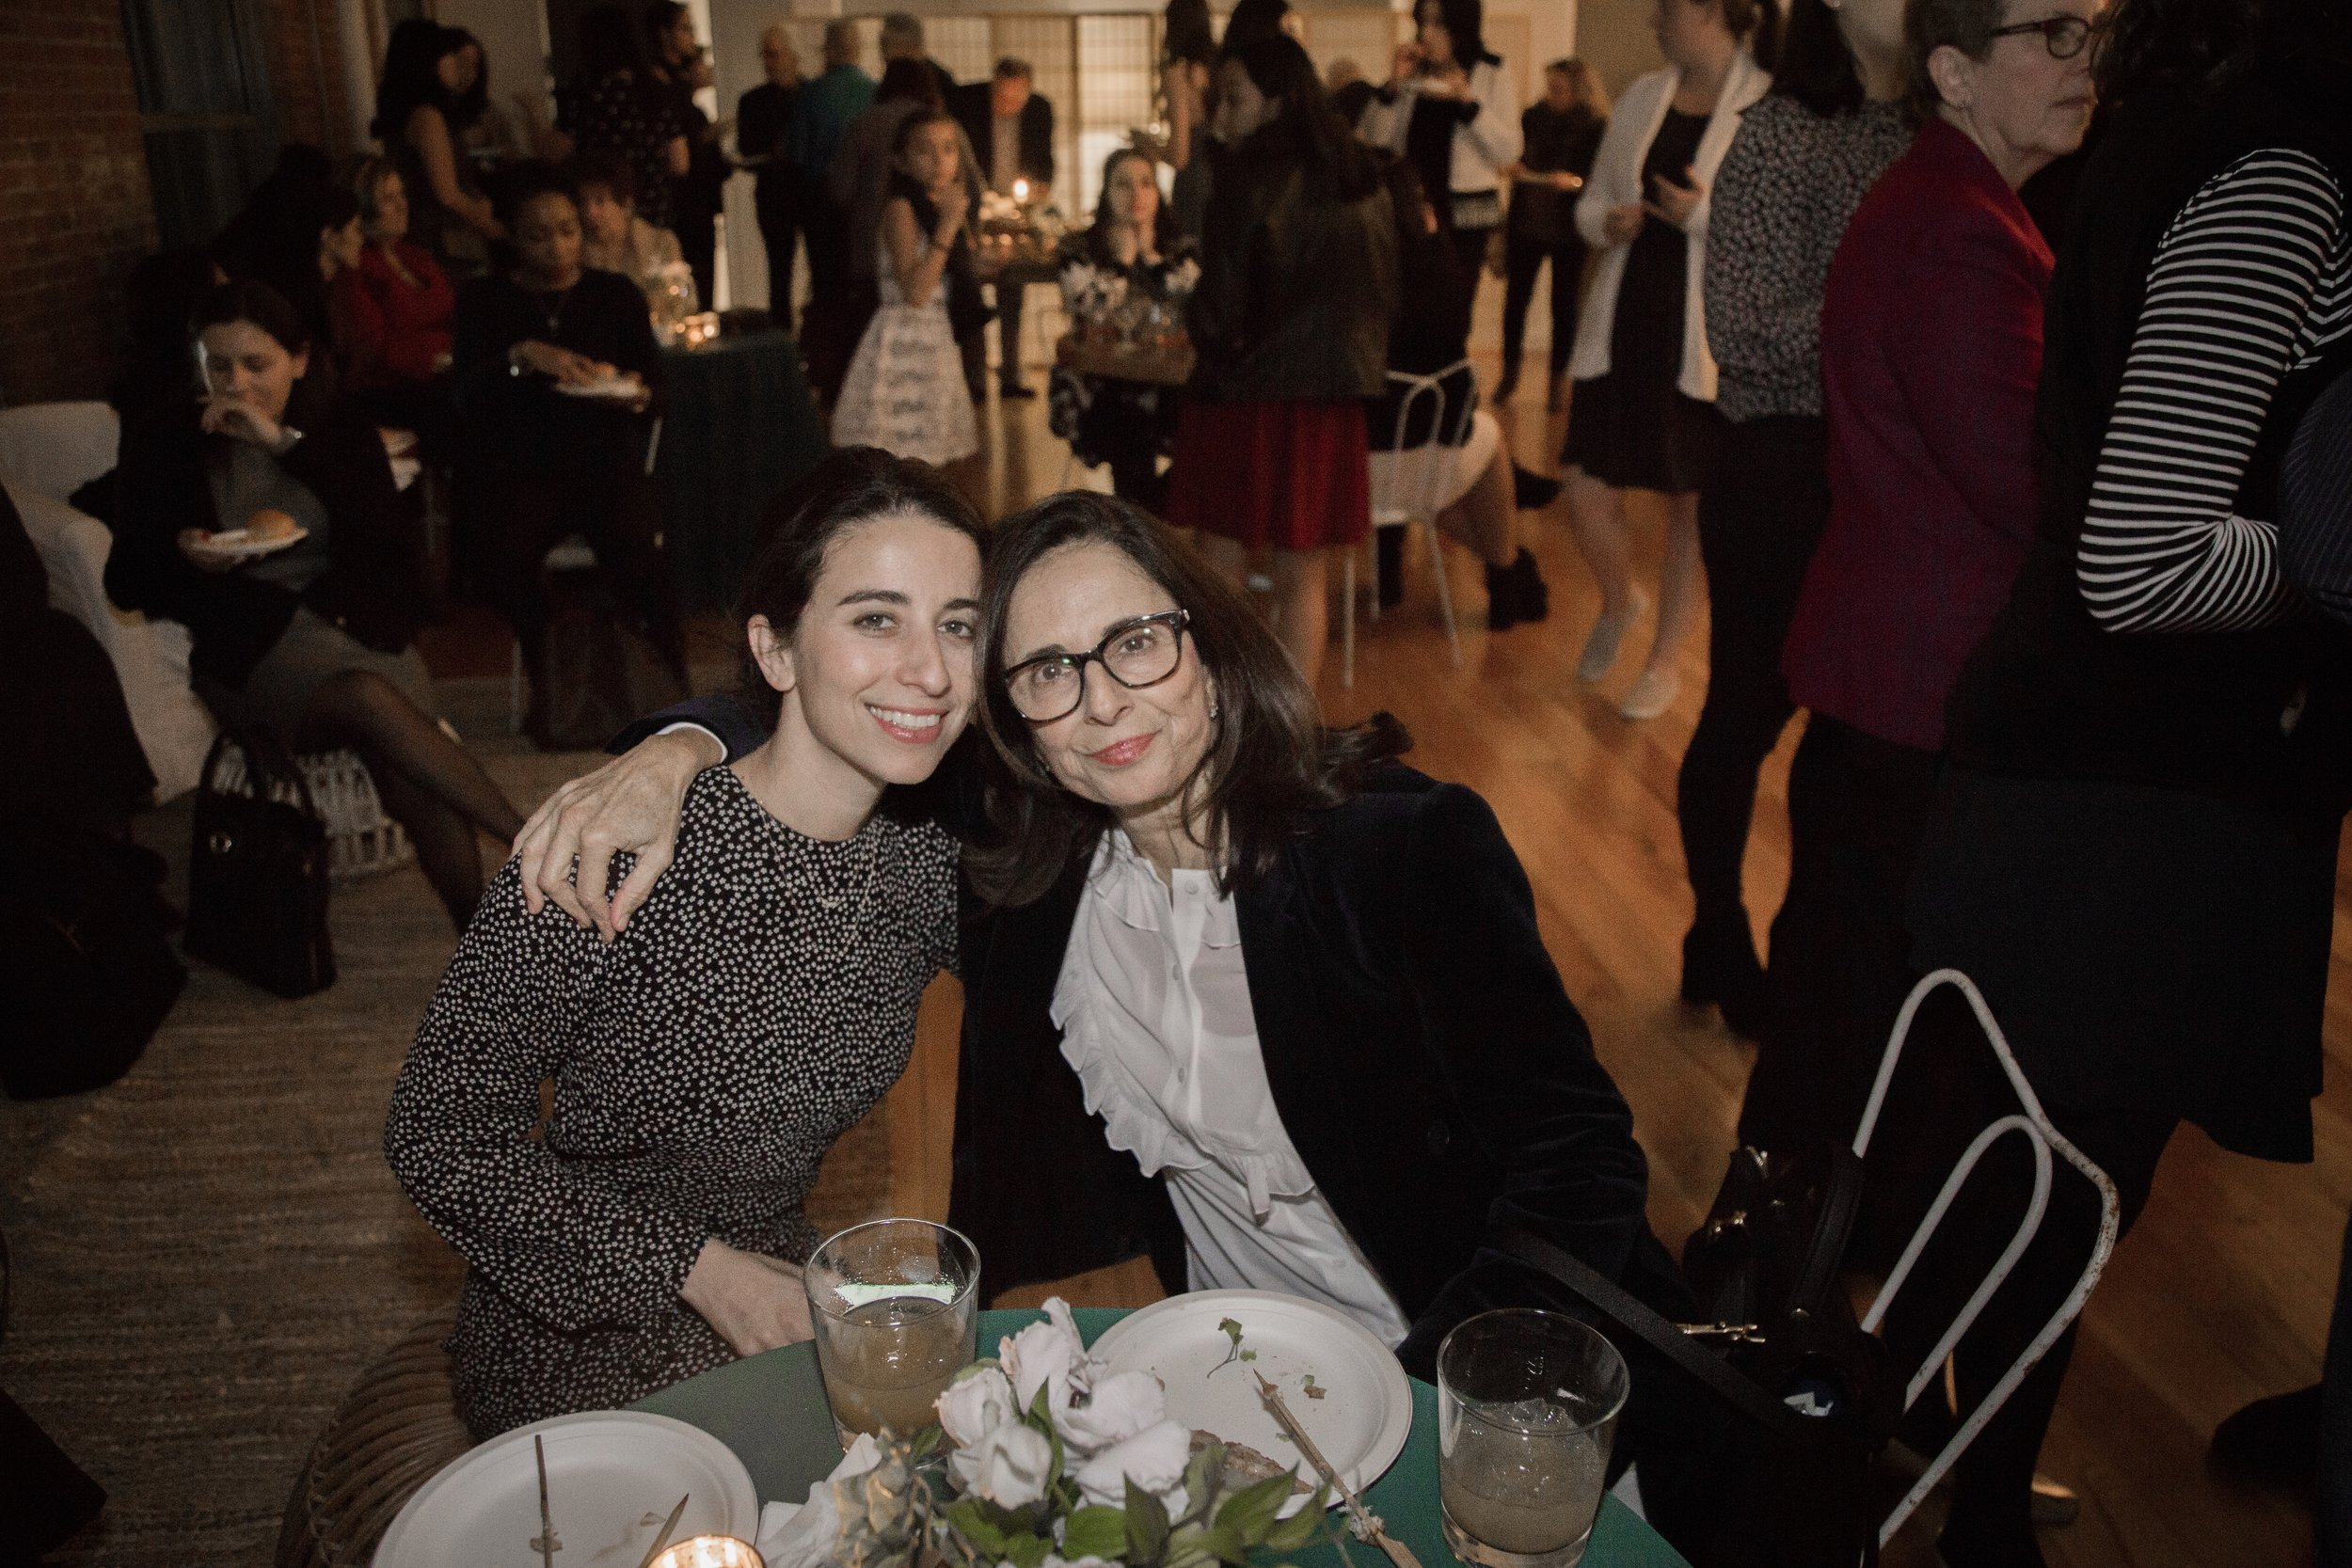 The evening honored women, such as Meika Hollander of  Sustain  (pictured here with her mom) who were exemplifying women's leadership and empowerment.